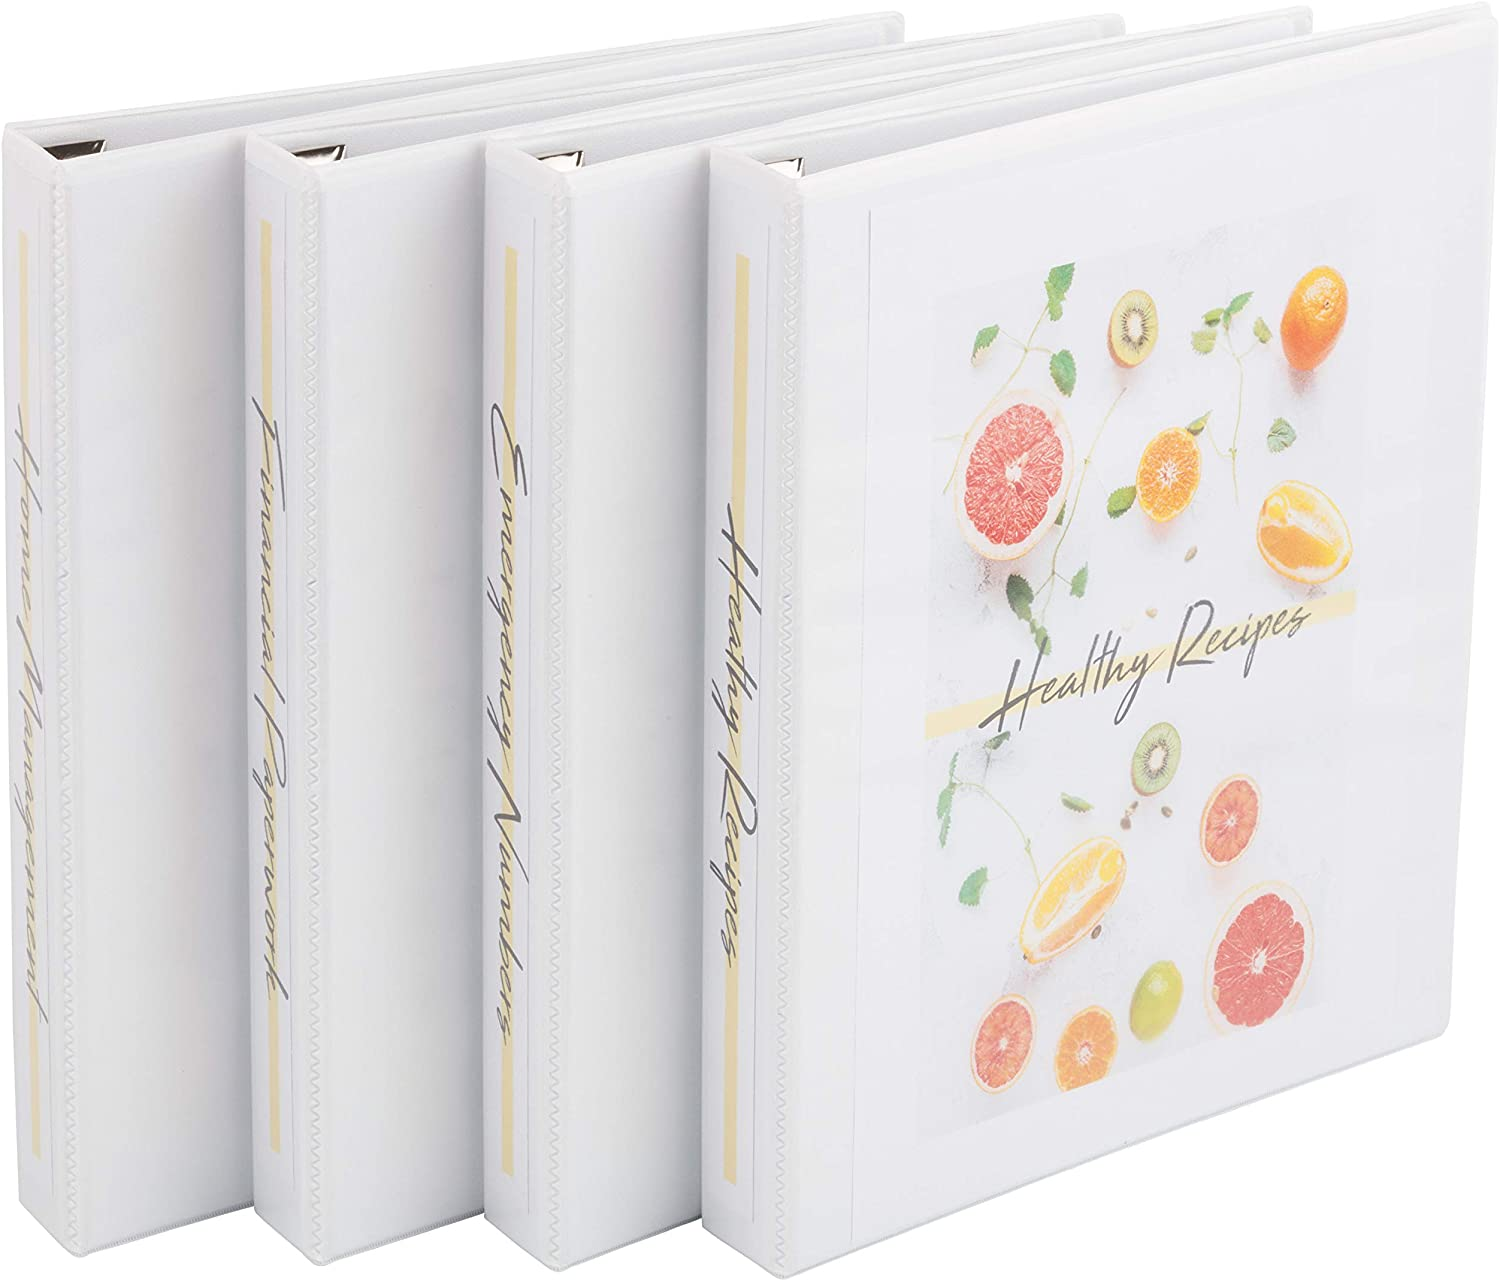 "Avery Durable View 3 Ring Binders, 1"" Slant Ring, 4 White Binders, Create A Set Of Recipe Binders (17575)"